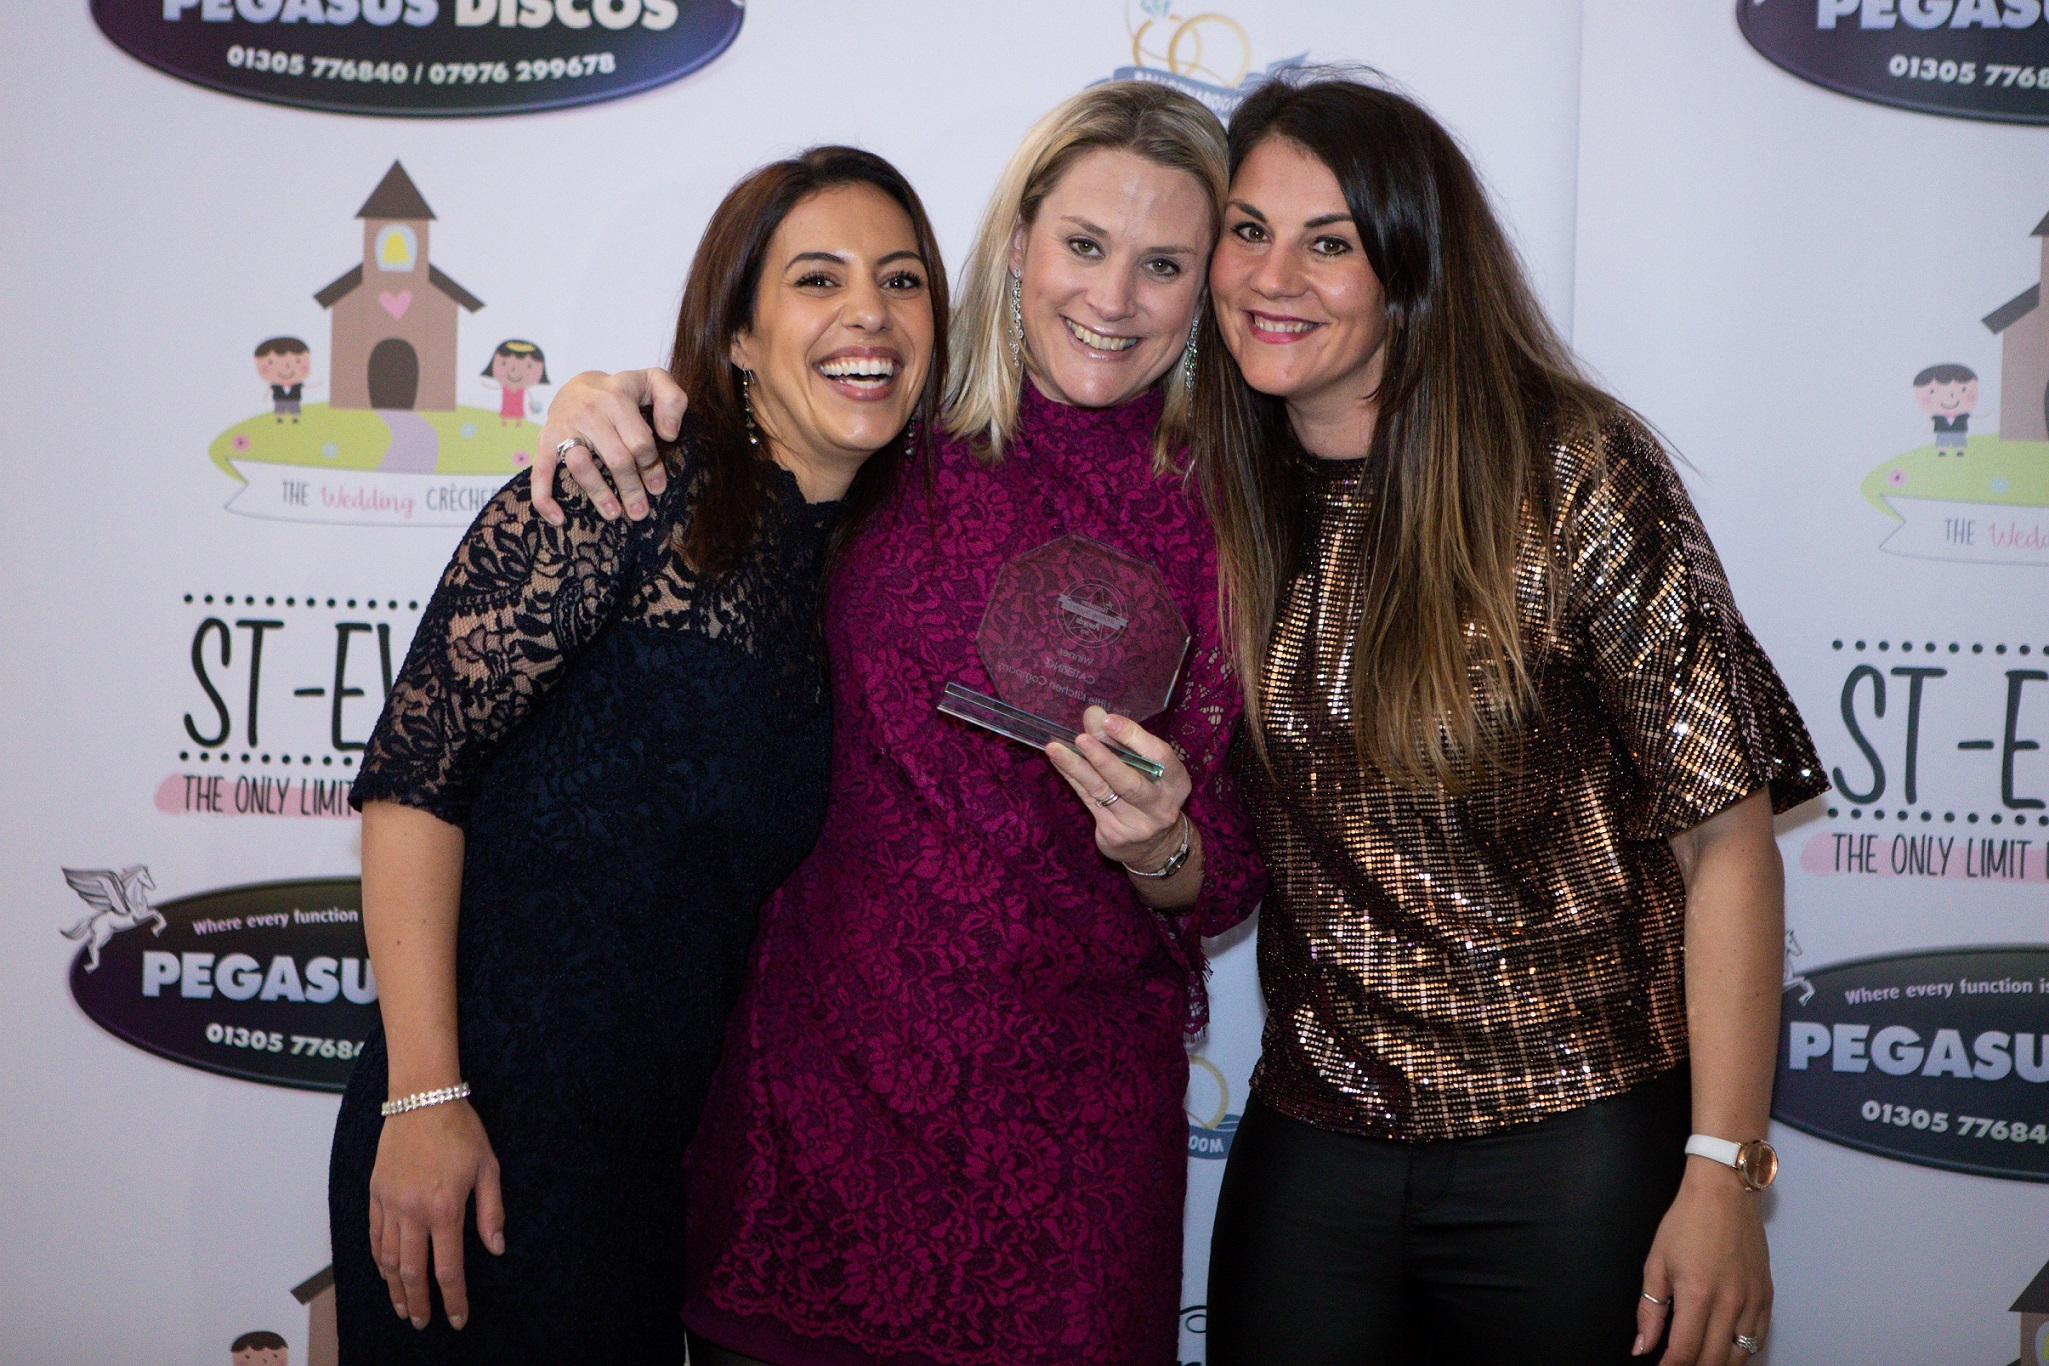 The Little Kitchen Company winners: Cait Salanson (middle) with employees Gemma Mills (left) and Victoria Stevens (right)